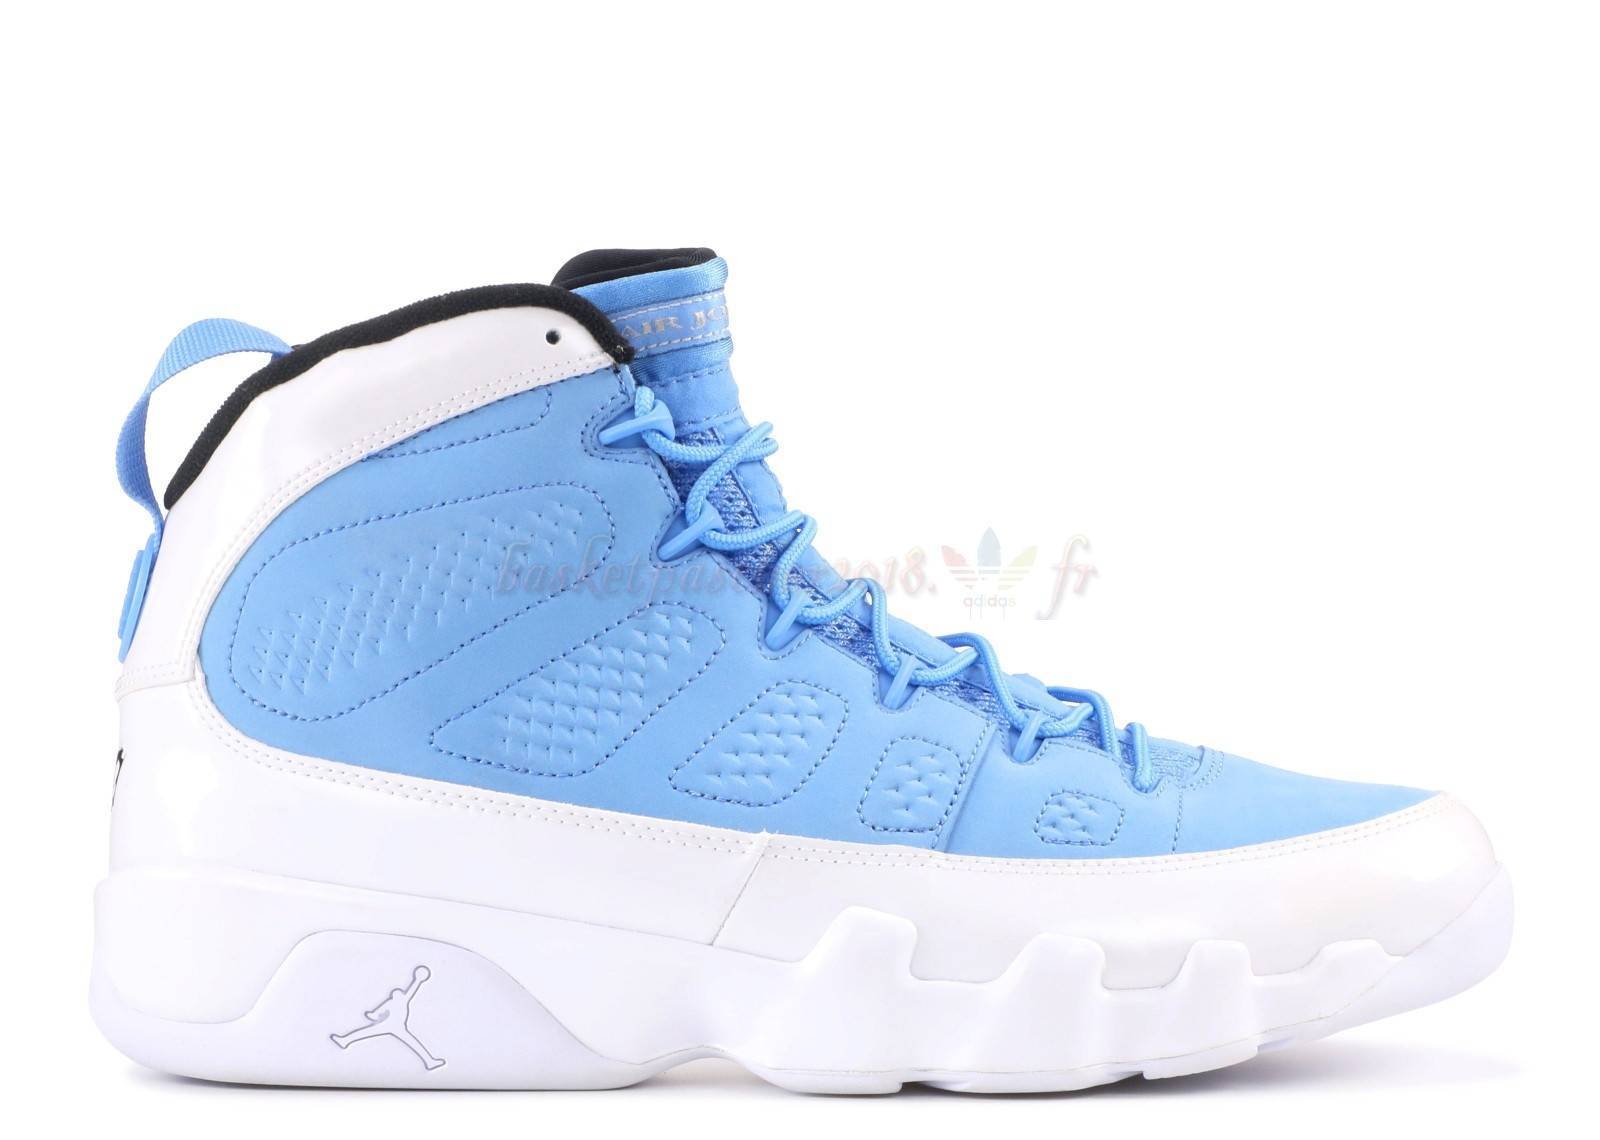 "Vente Chaude Chaussures De Basketball Homme Air Jordan 9 Retro ""For The Love Of The Game"" Bleu Blanc Noir (302370-401) Pas Cher"